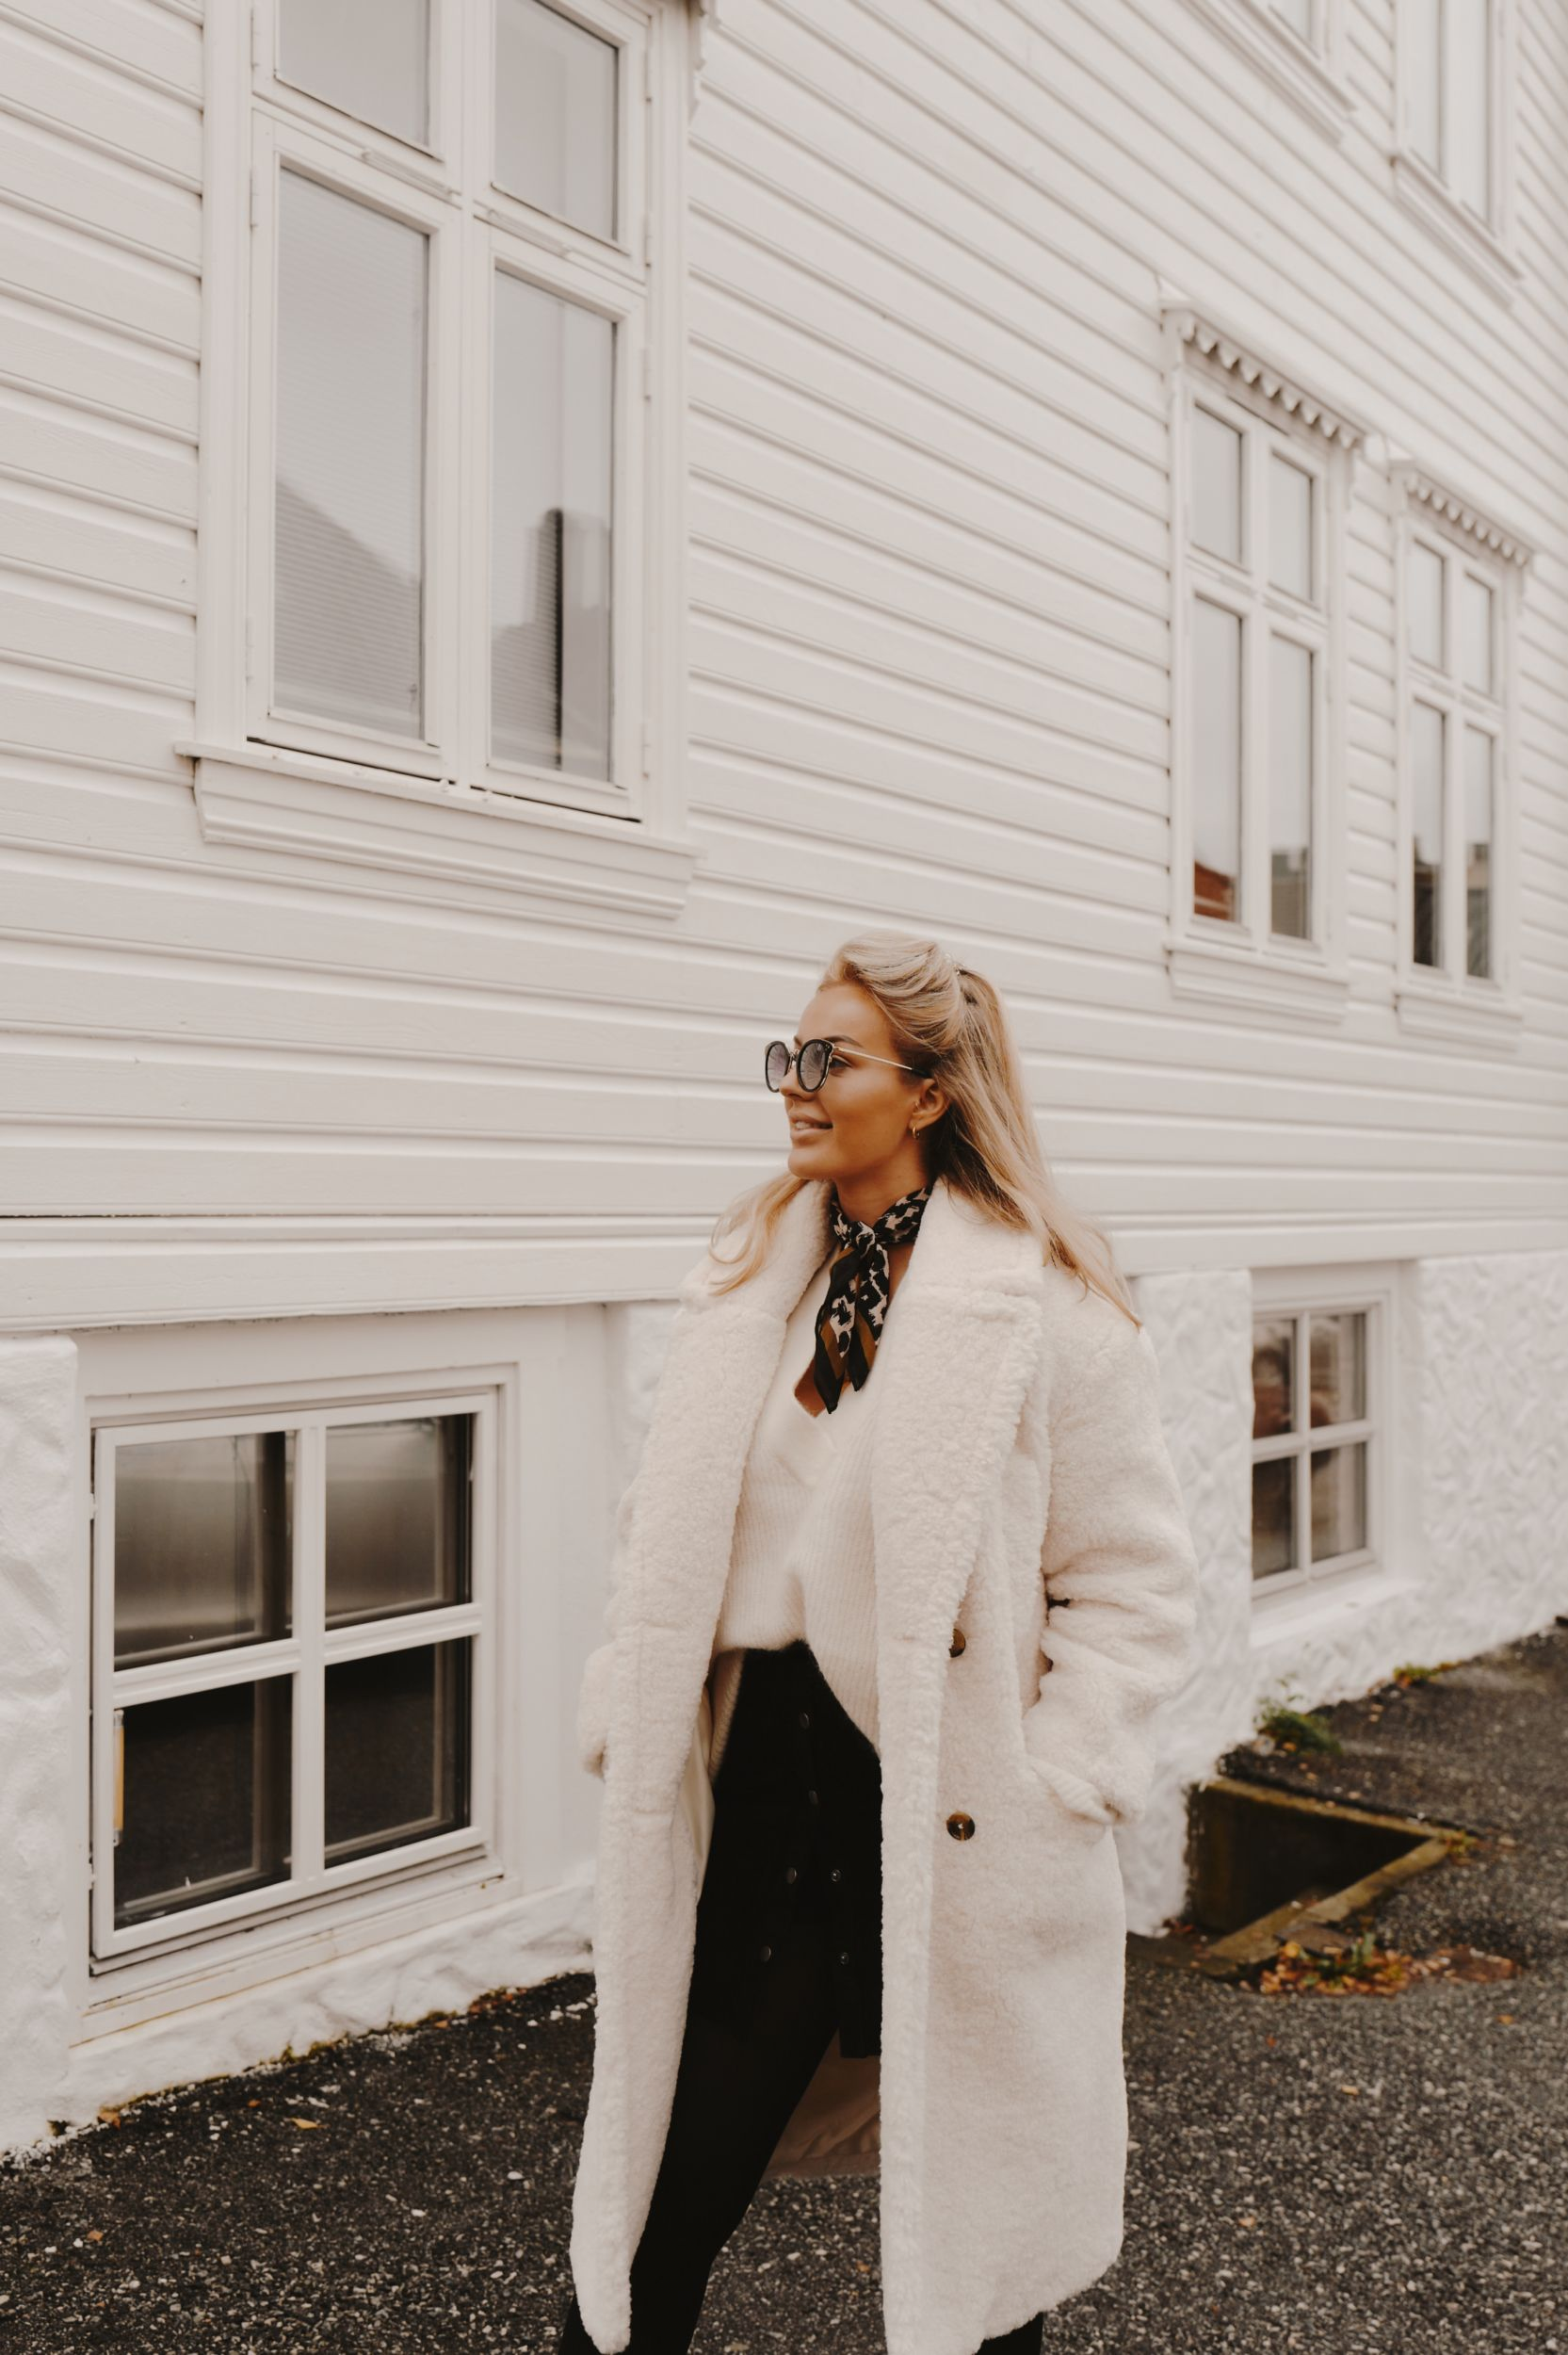 ff359c81 Magical fall morning – Eirin Kristiansen | Style | Winter fashion ...